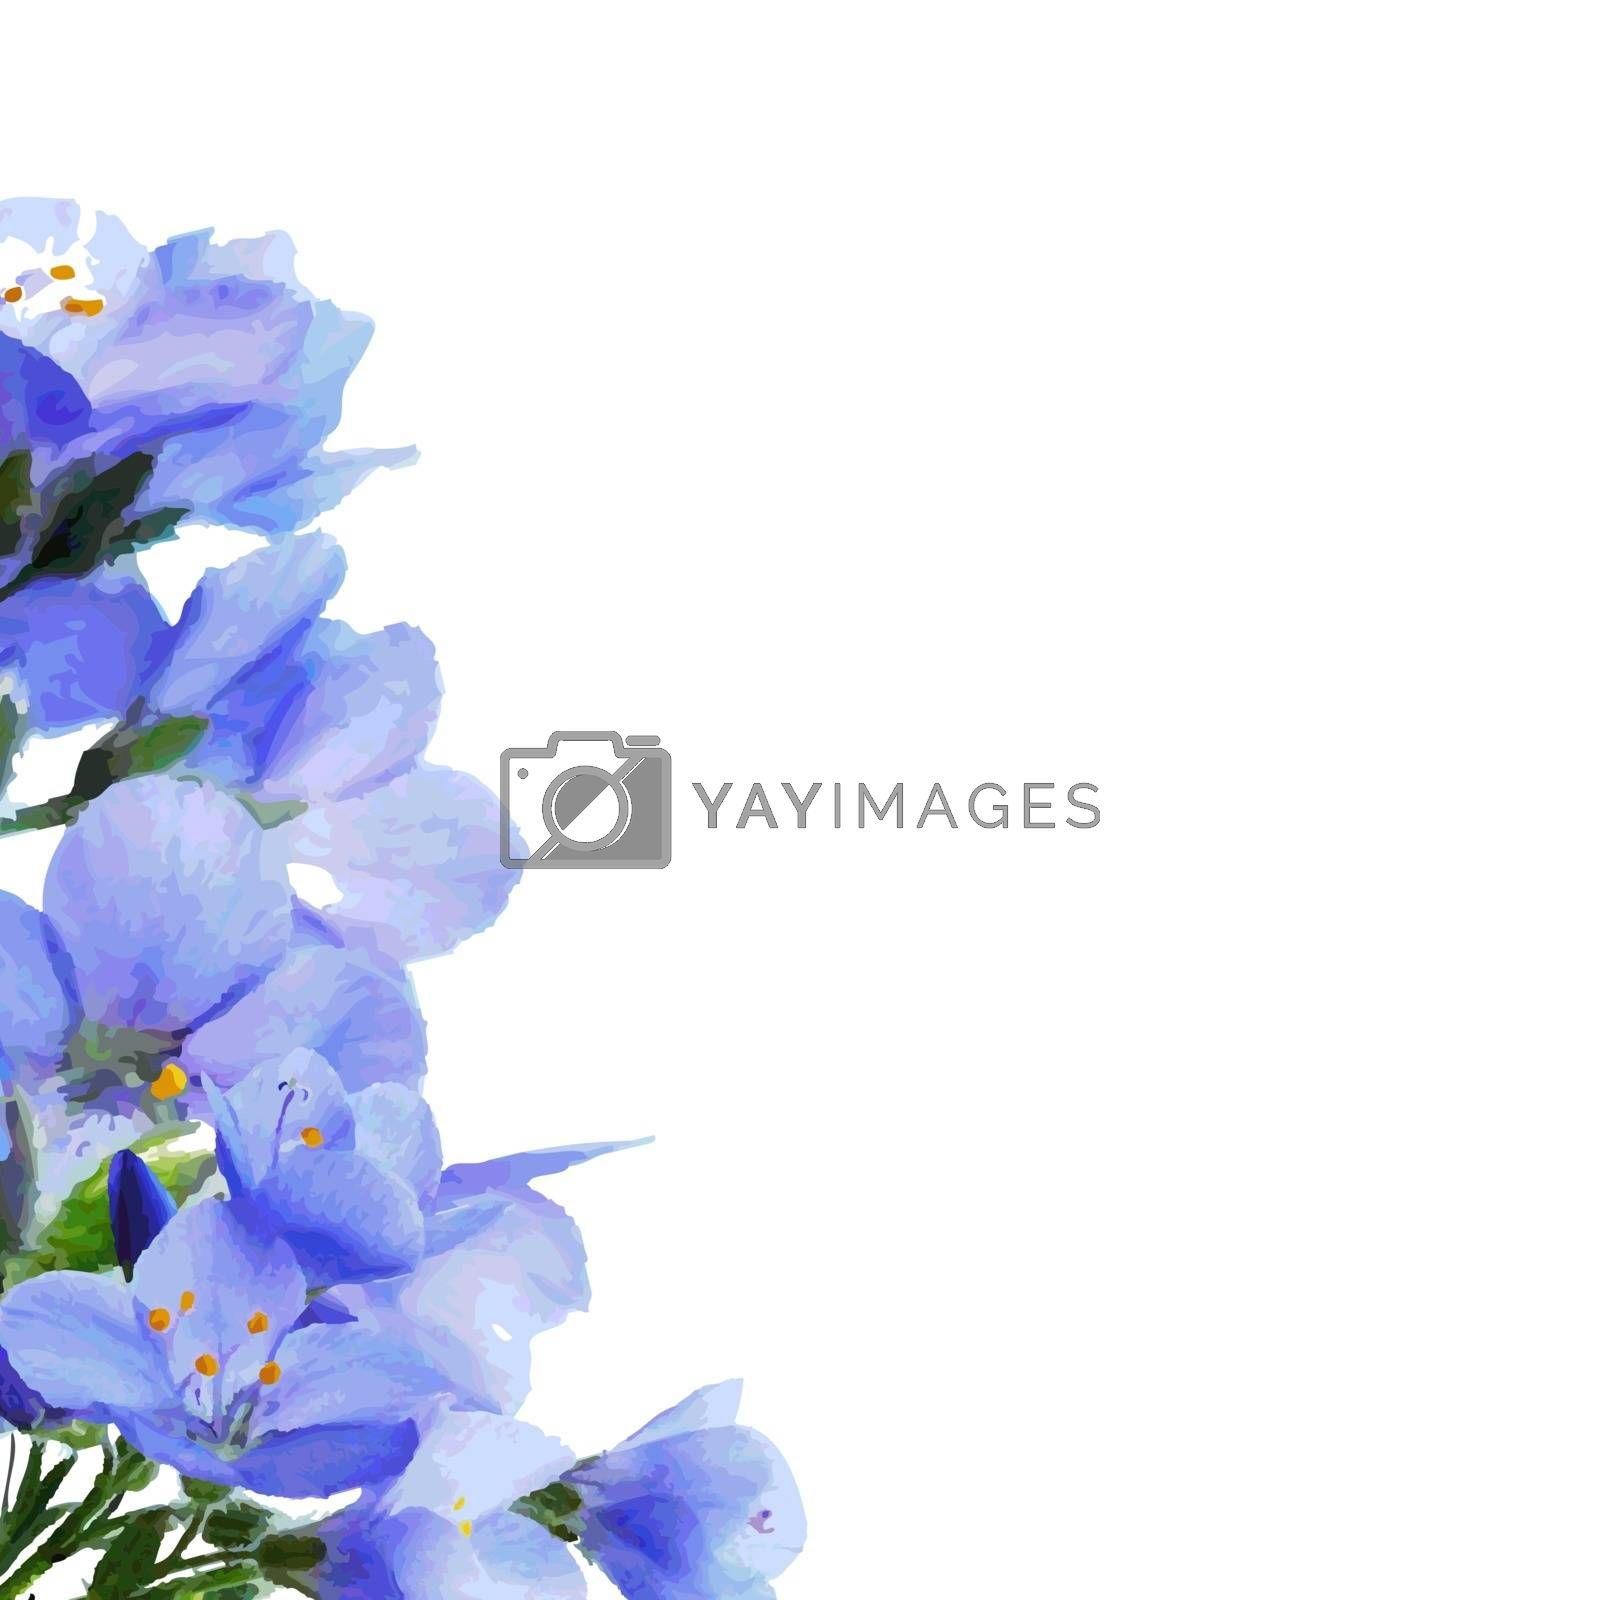 Blue Flowers Border by barbaliss